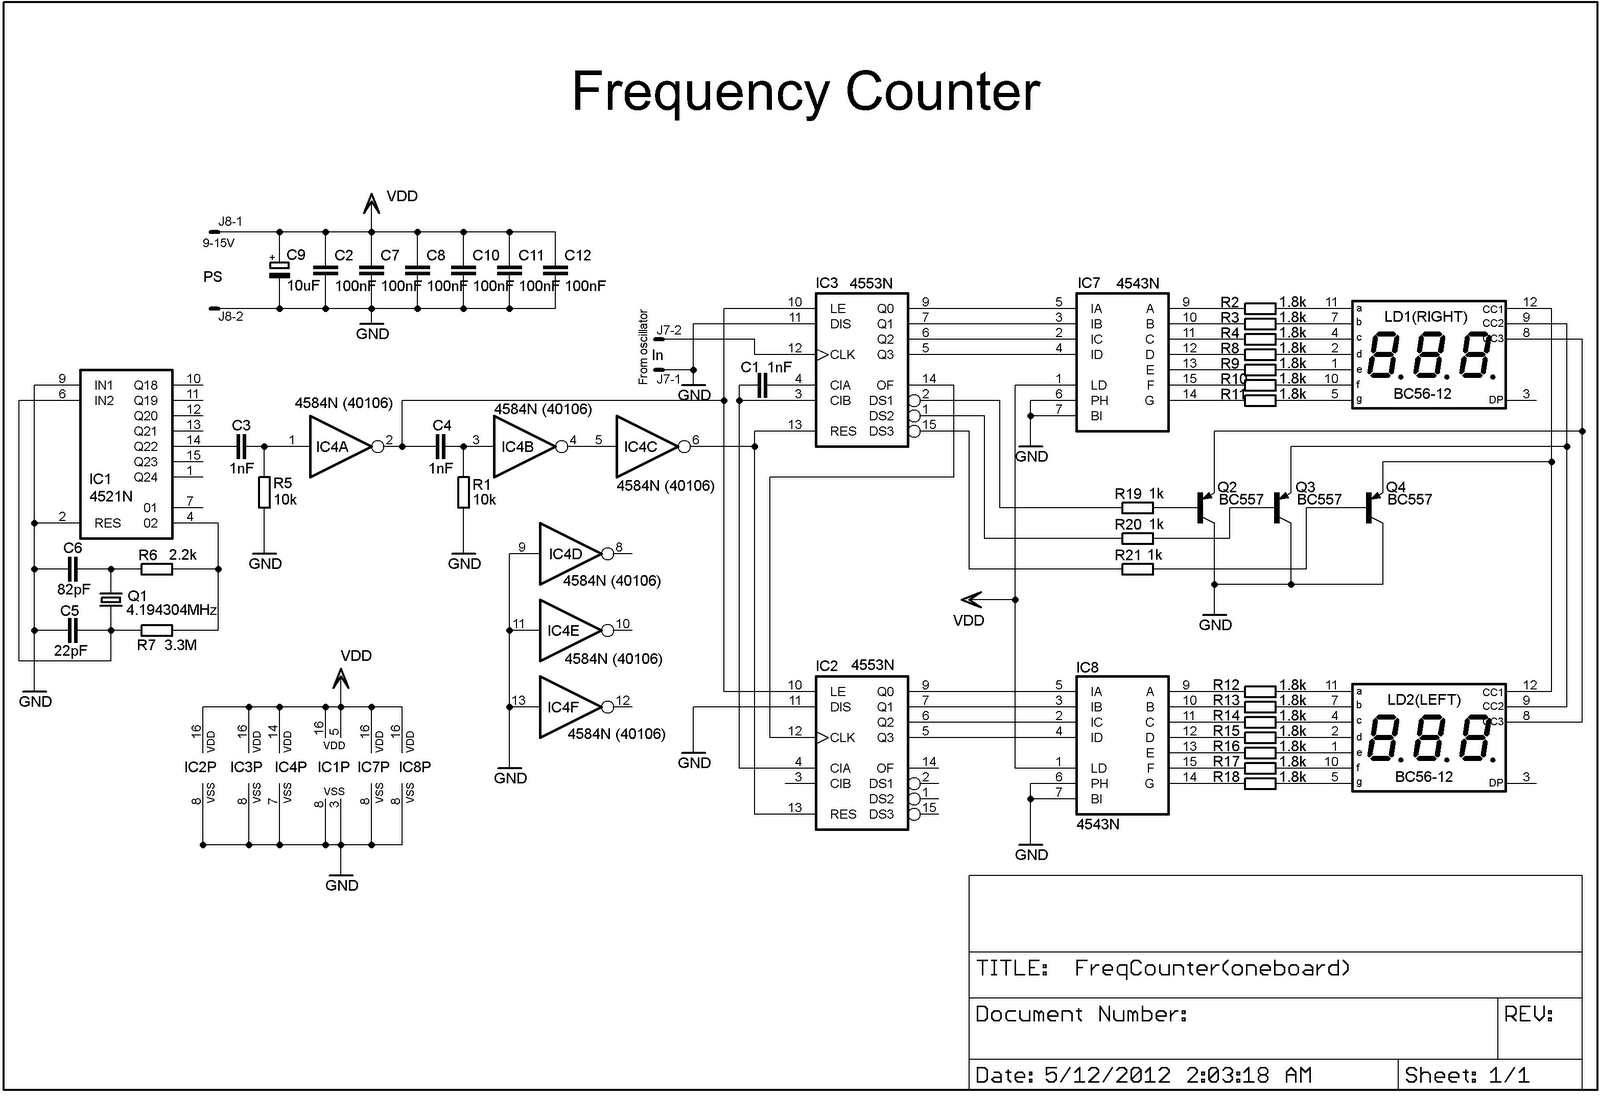 Frequency Counter Schematic Diagram : Frequency counter circuit working and applications